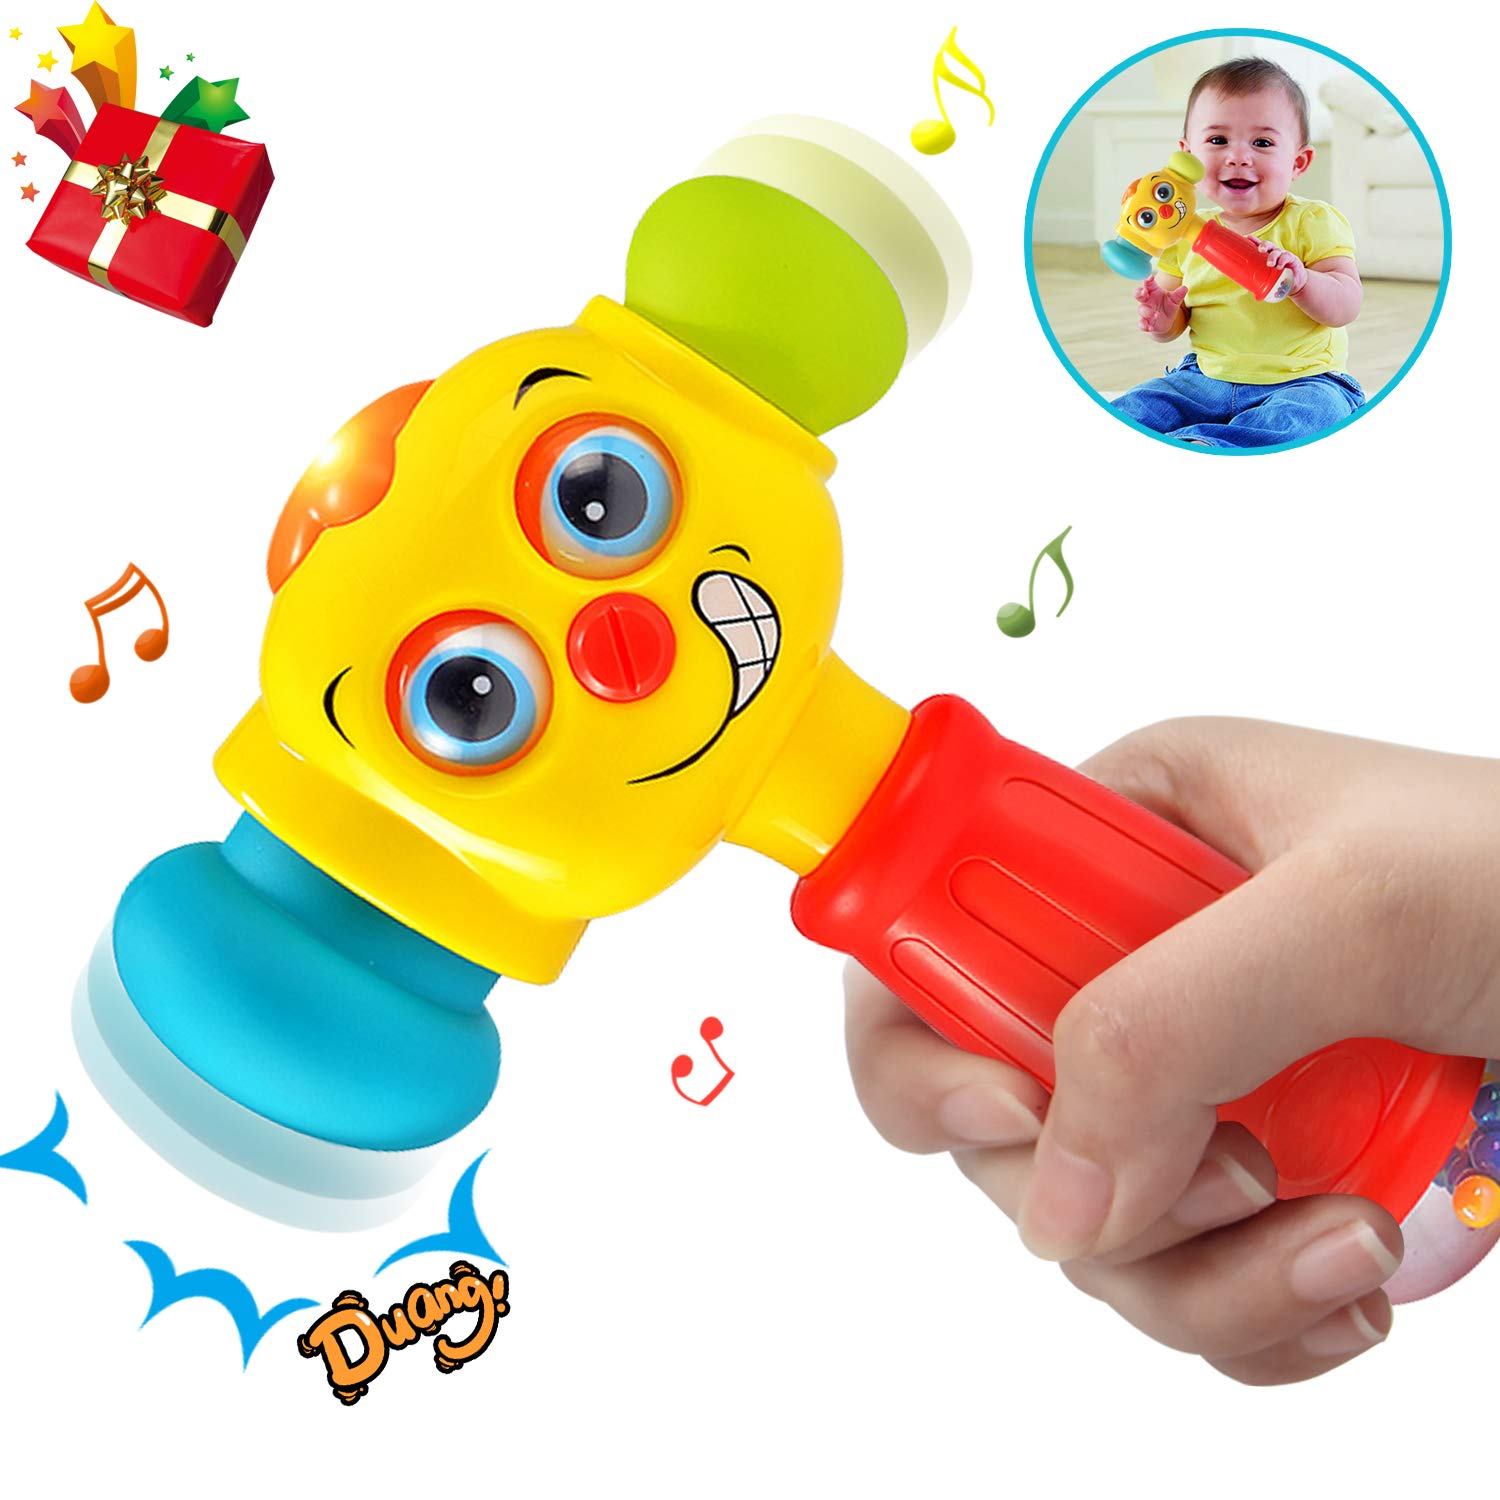 HOMOFY Baby Toys Funny Changeable Hammer Toys 6 Months up,Multi-Function,Lights MusicToys for Infant Boys Girls 1 2 3 Years Old -Best Gifts